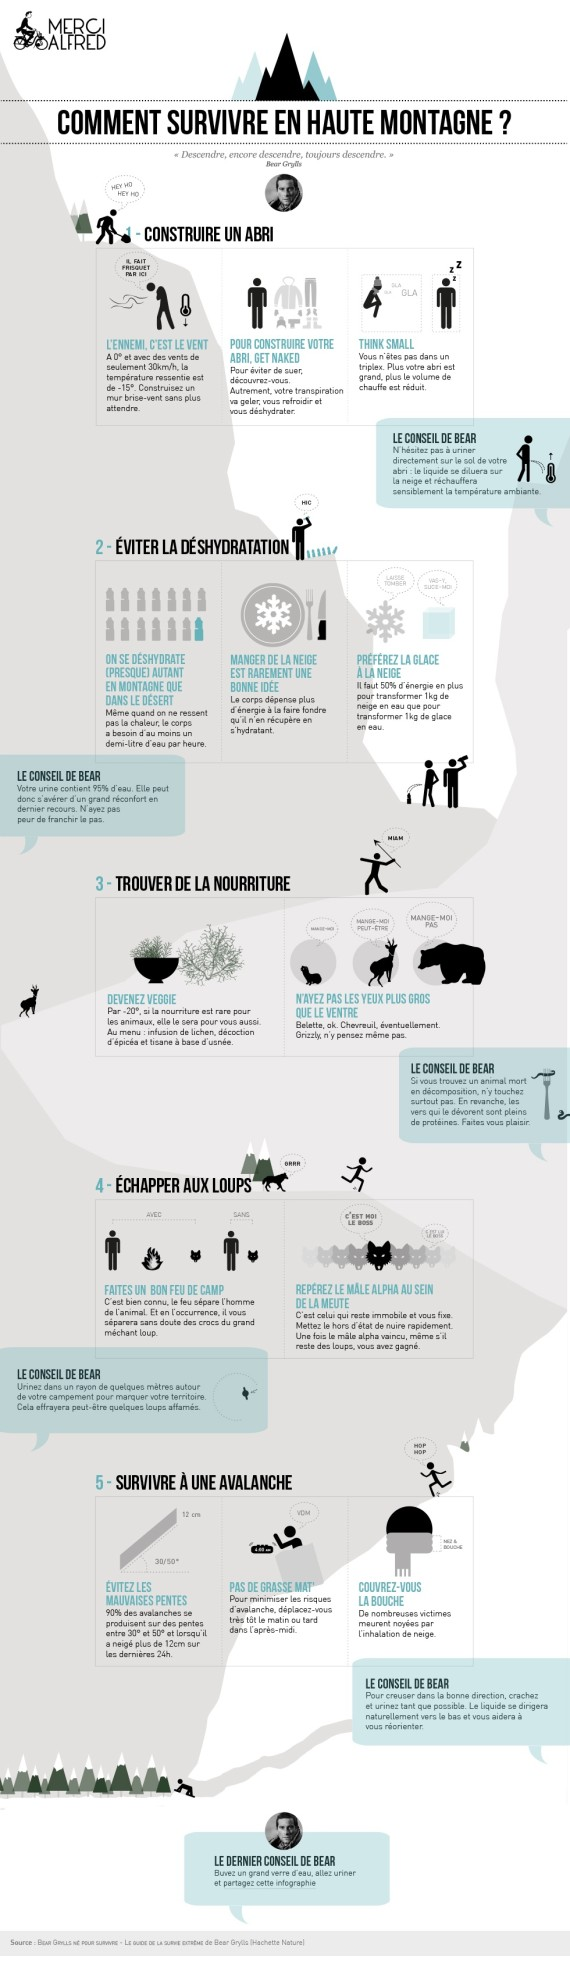 infographie merci alfred